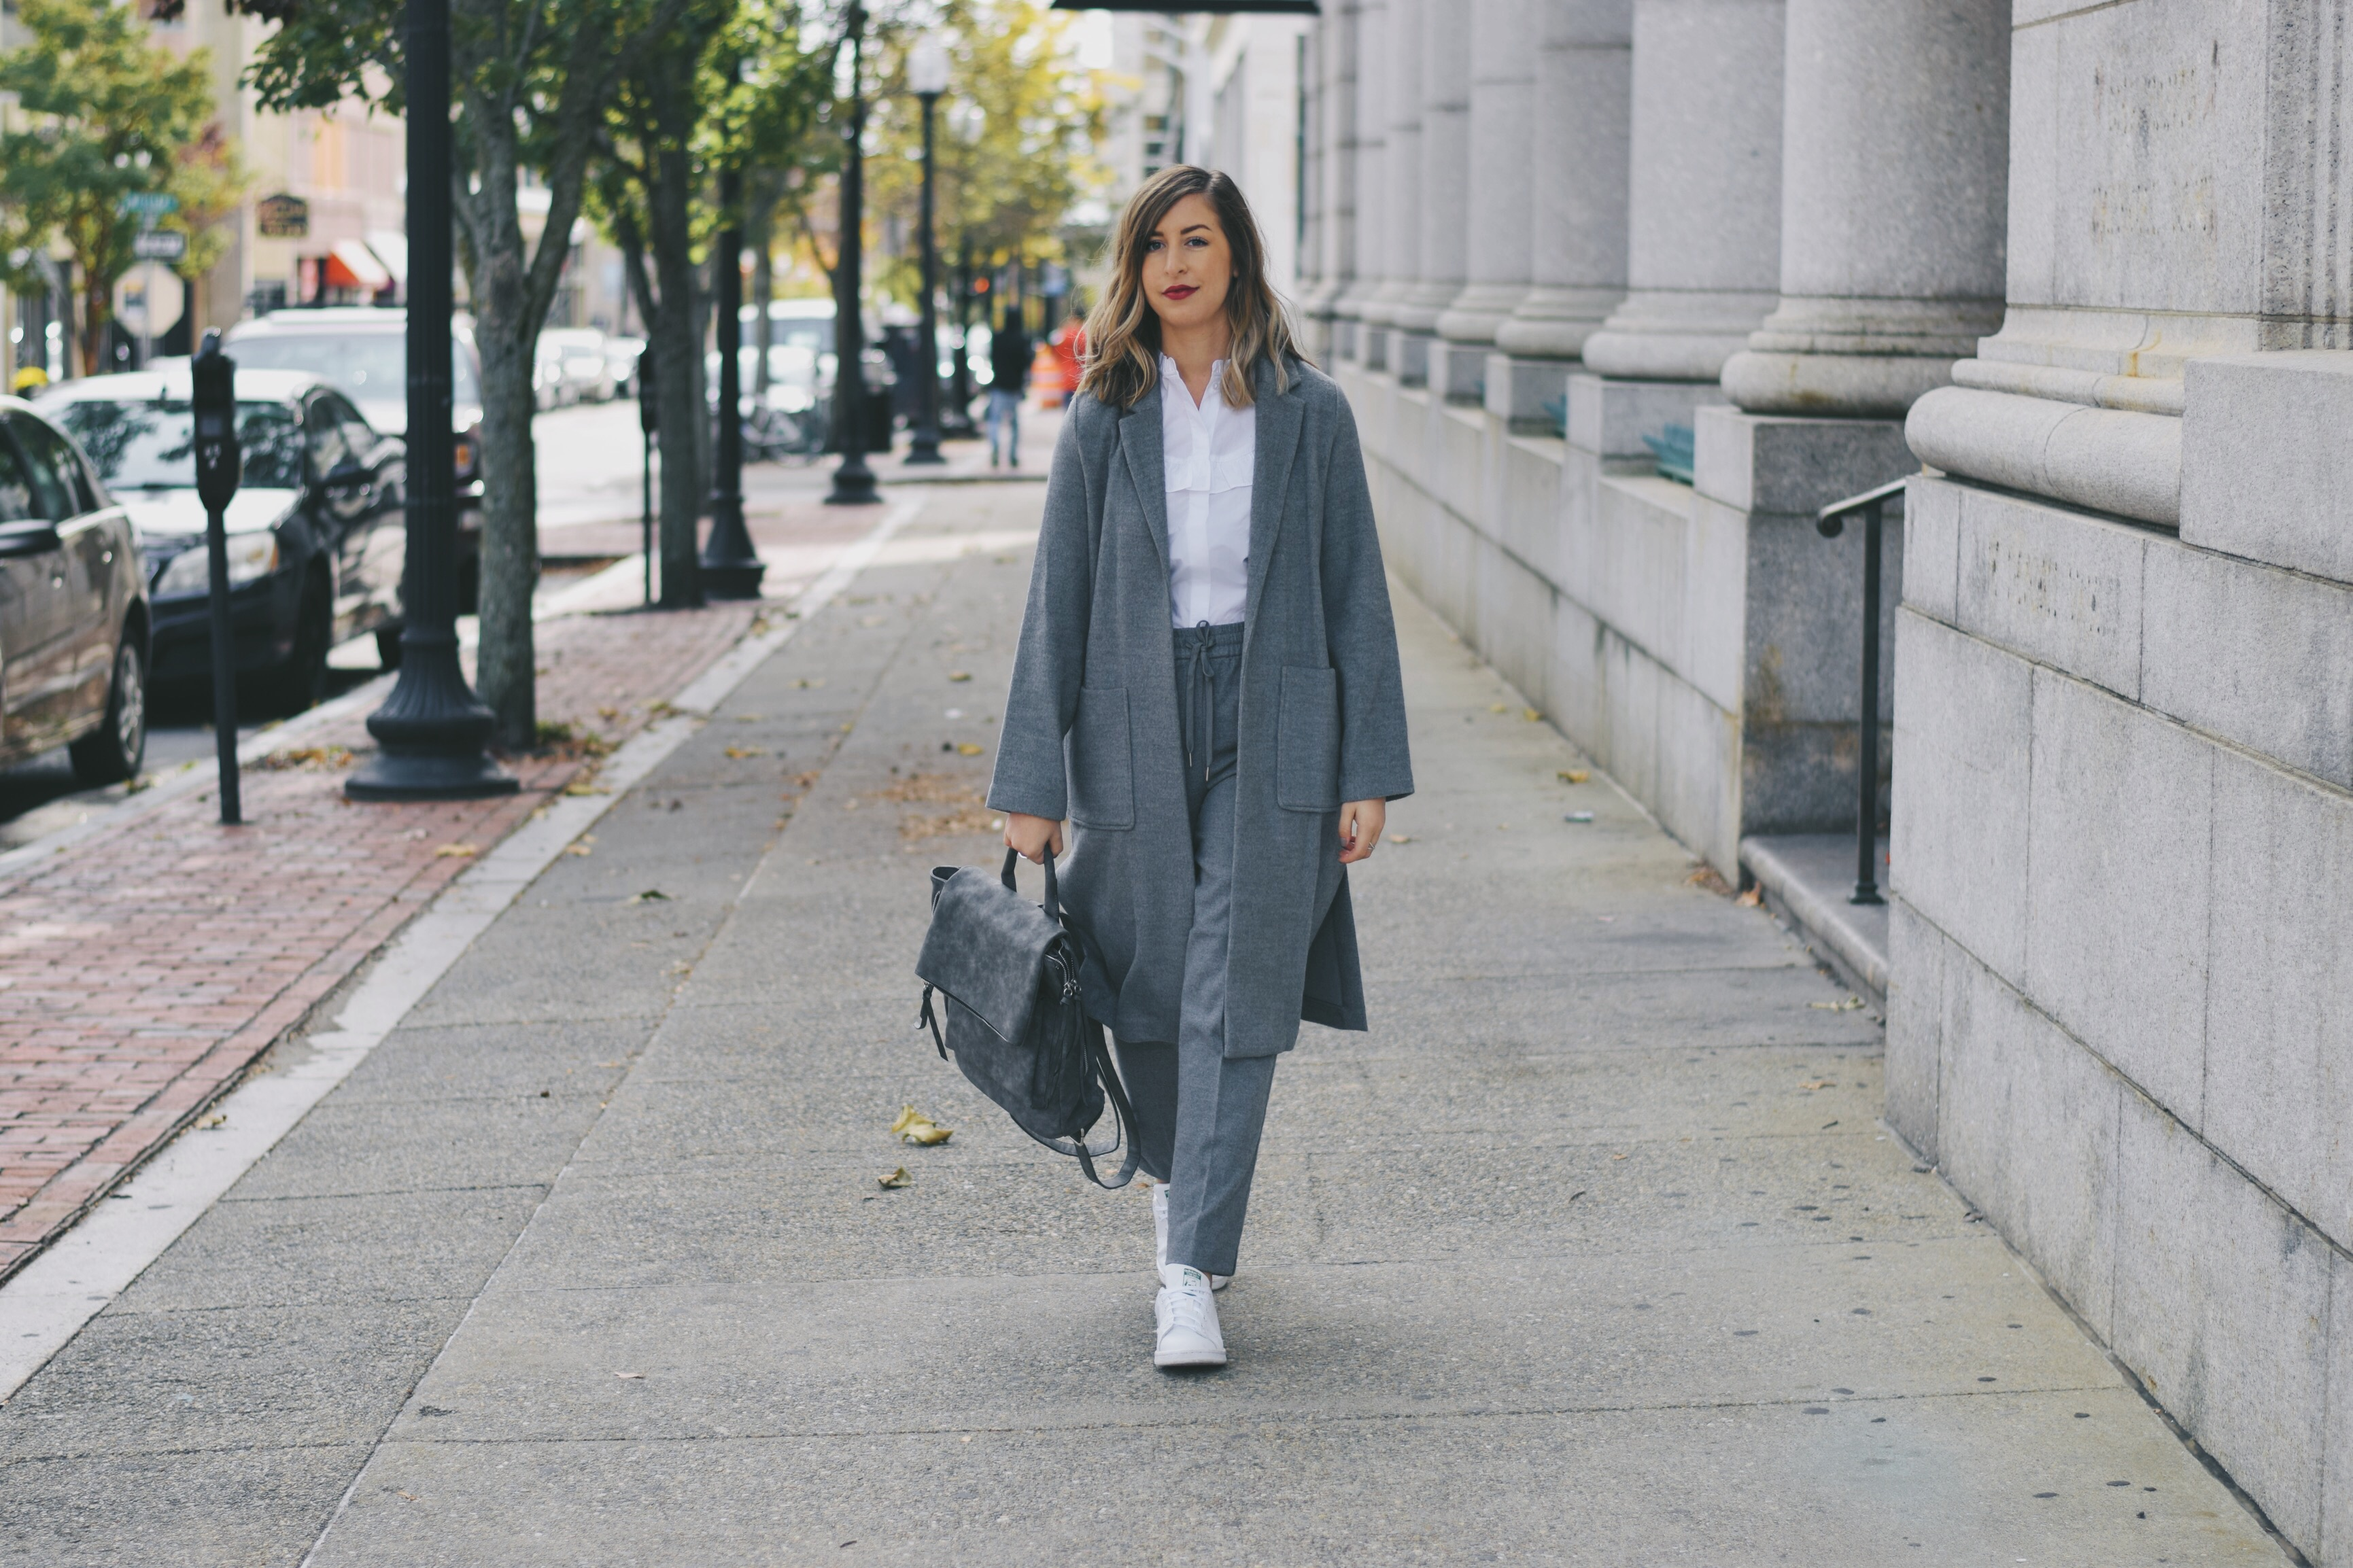 keeping it comfortable and casual in an athleisure outfit